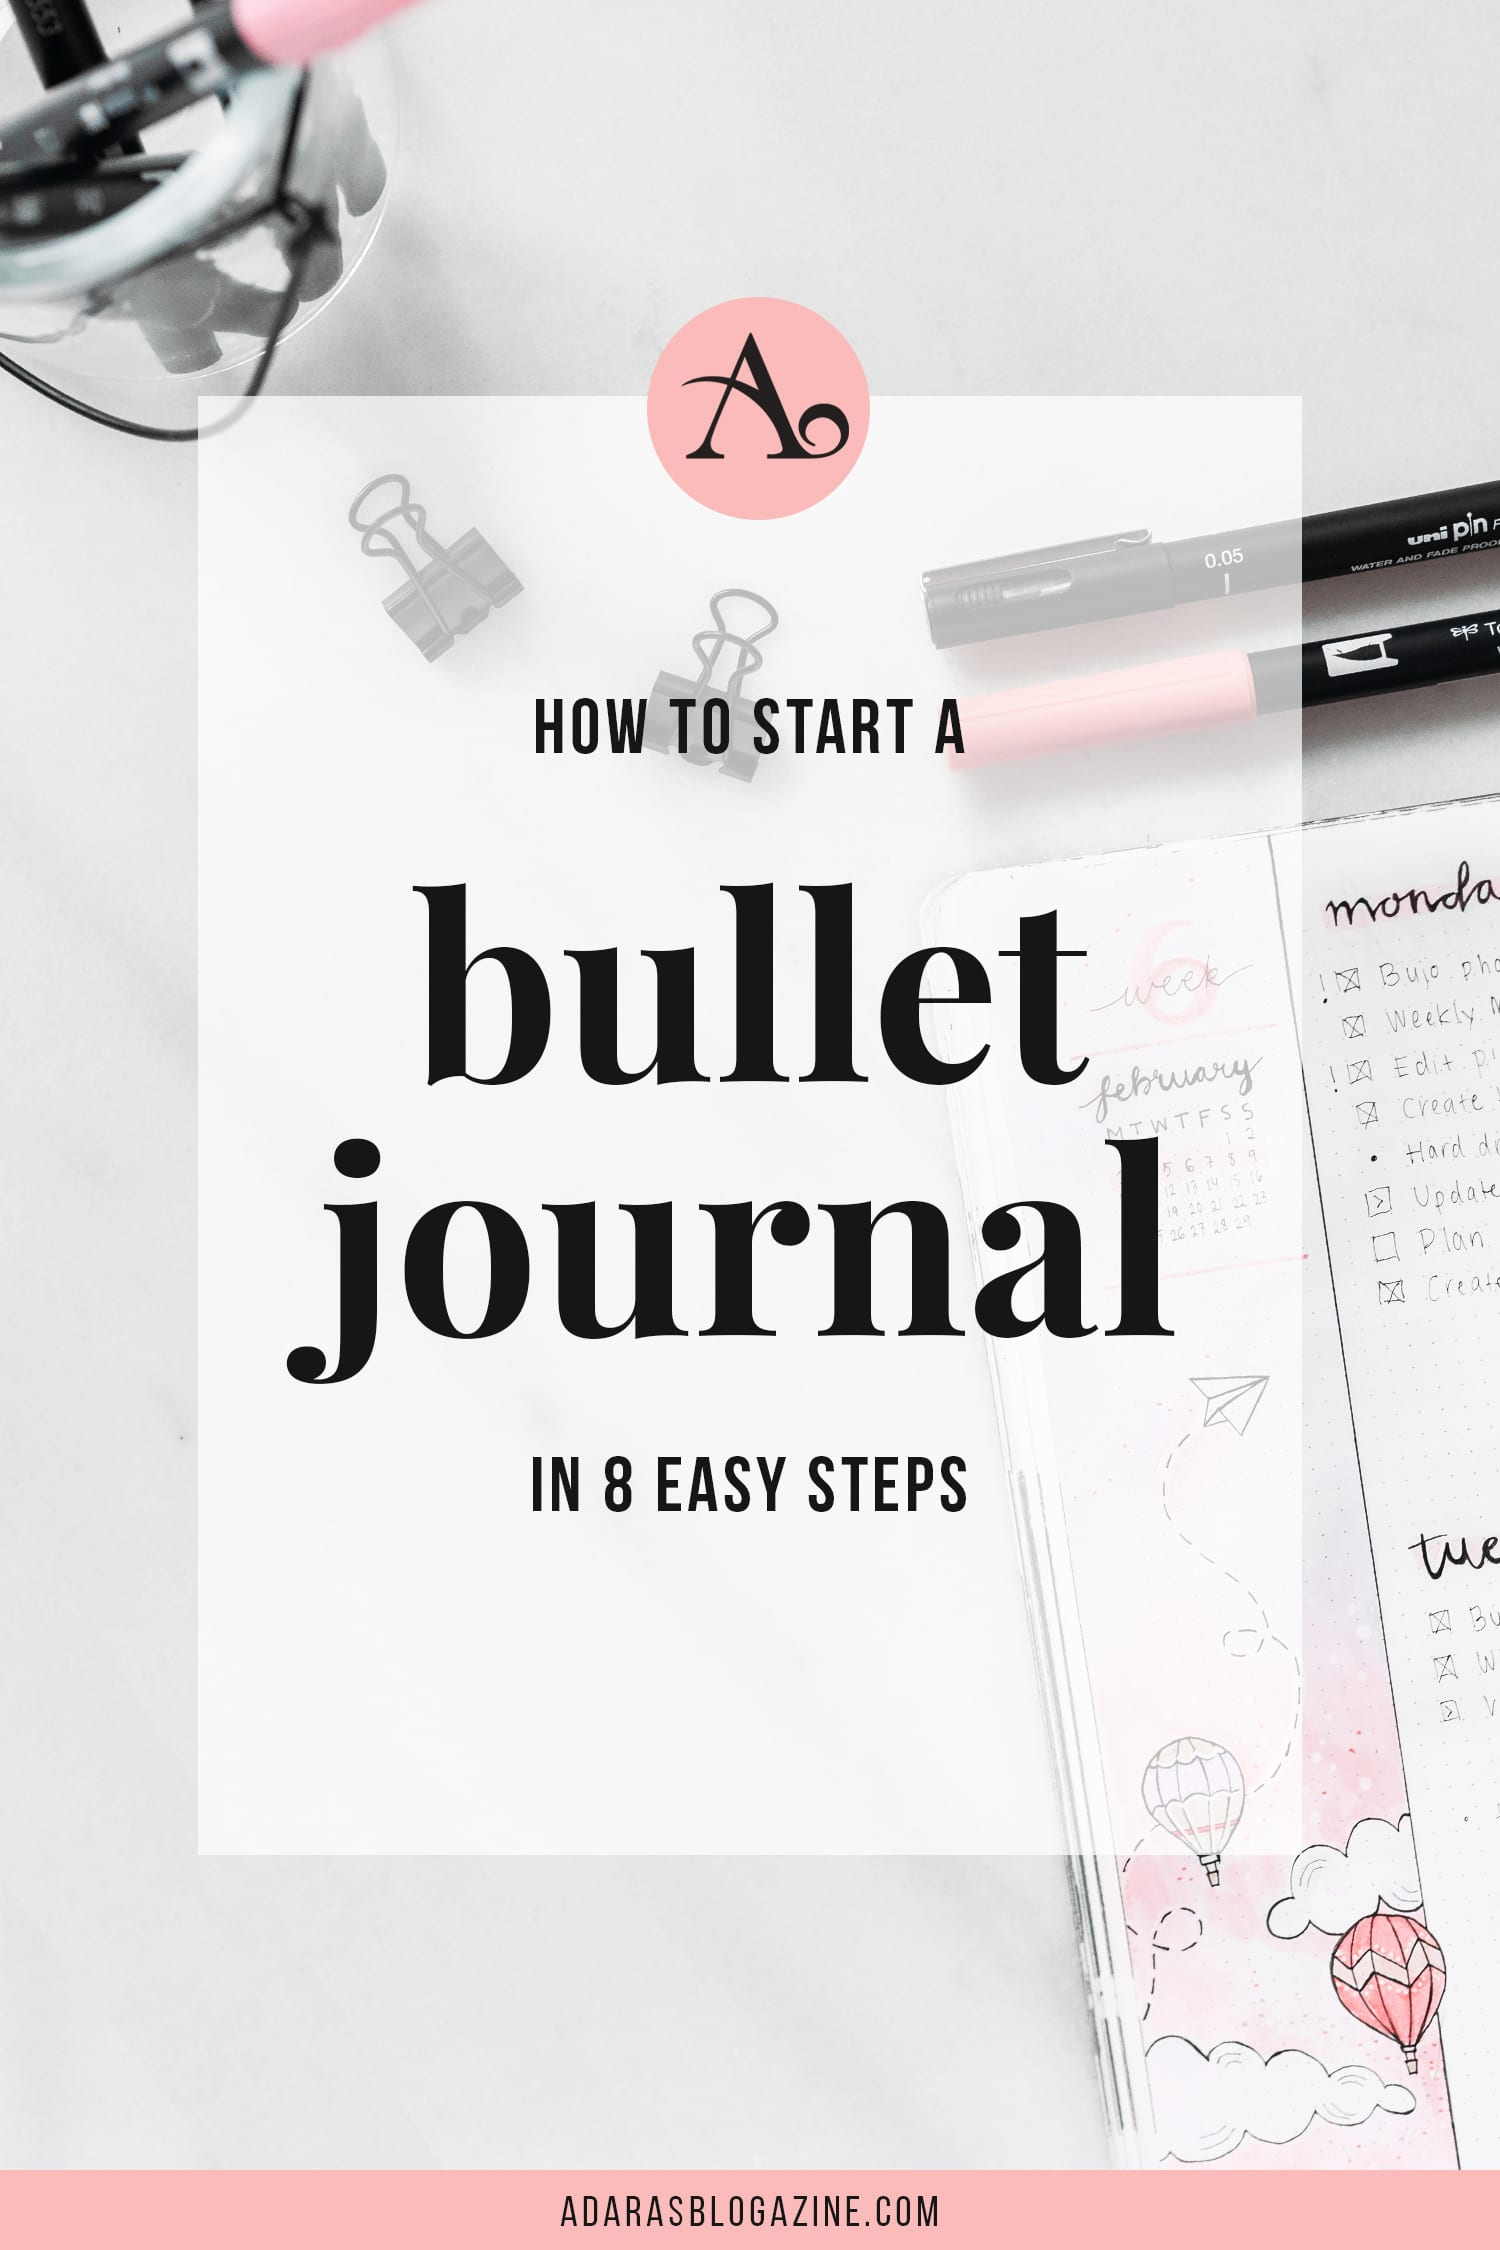 How to Start a Bullet Journal - The Complete Guide for Beginners & Beyond